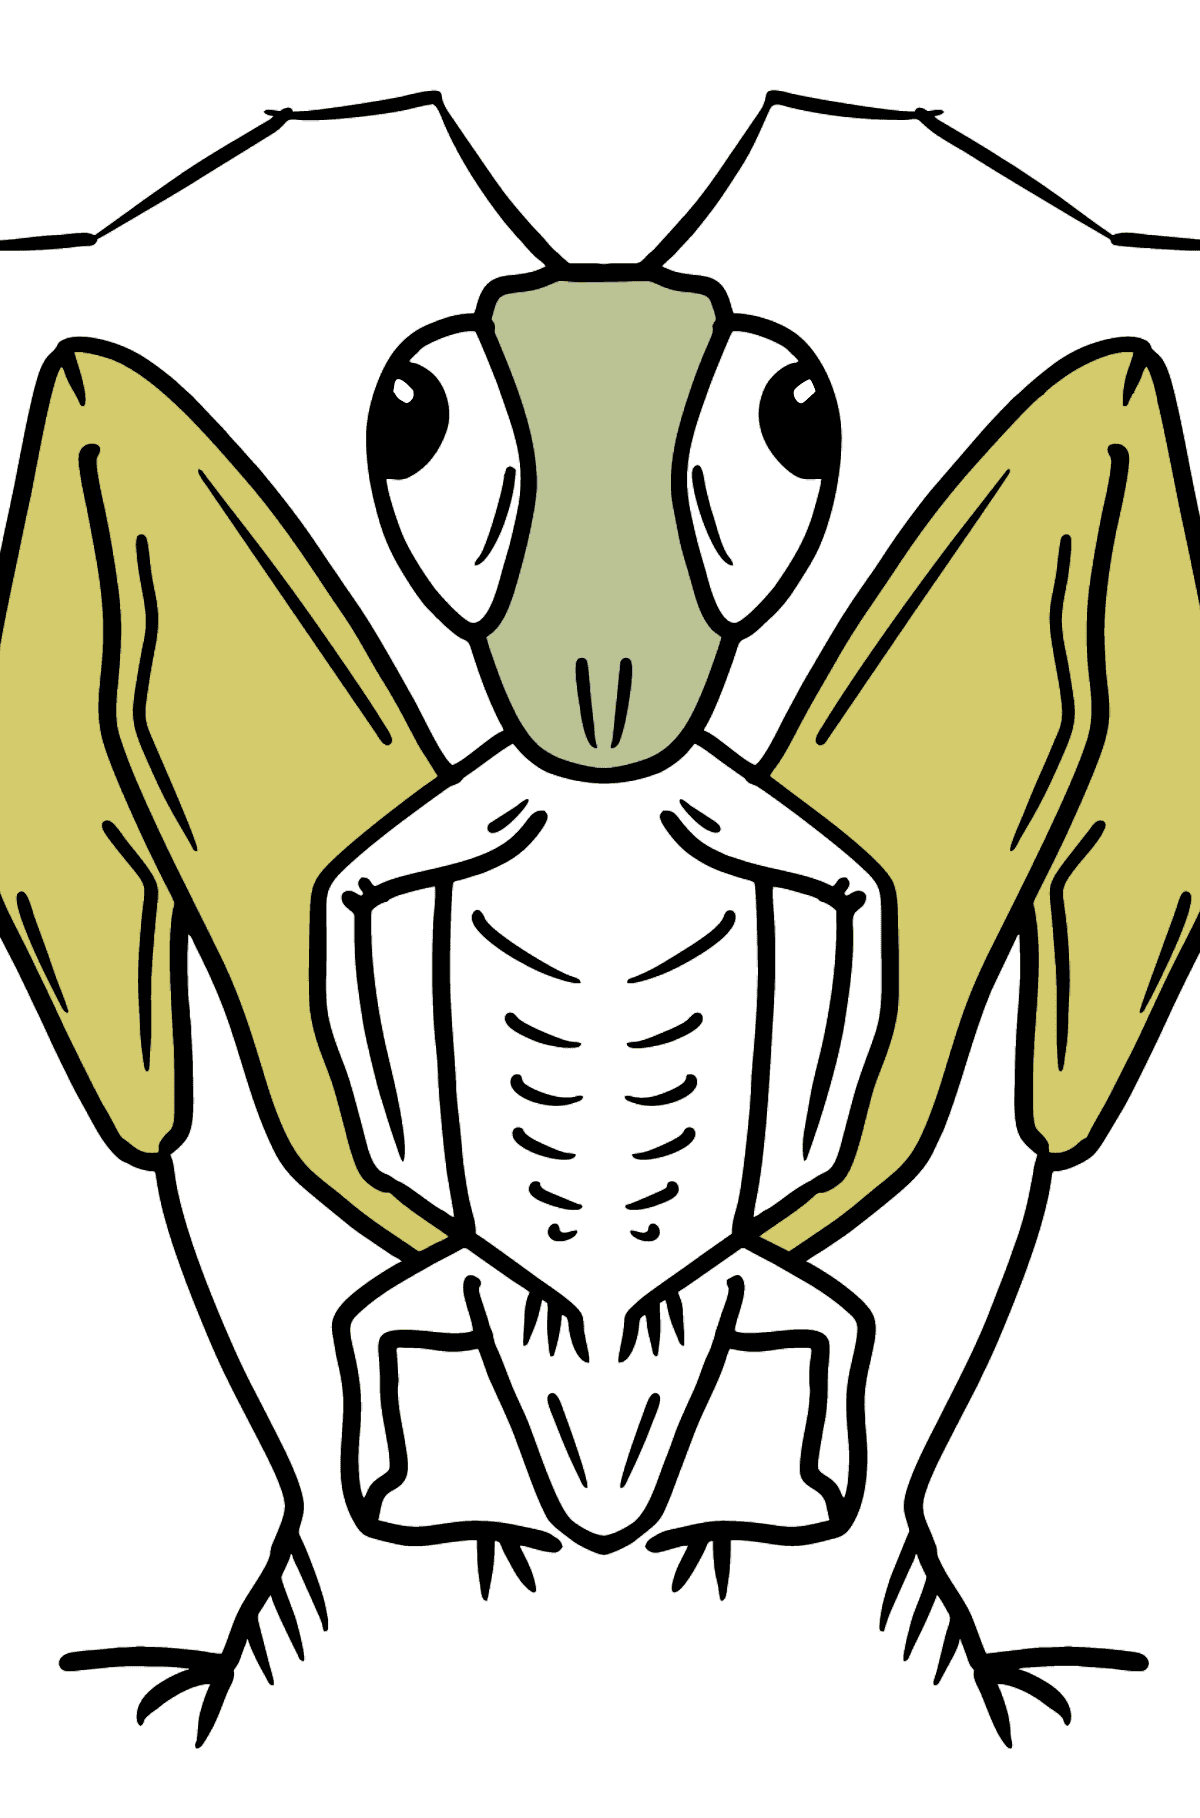 Grasshopper coloring page - Coloring Pages for Kids